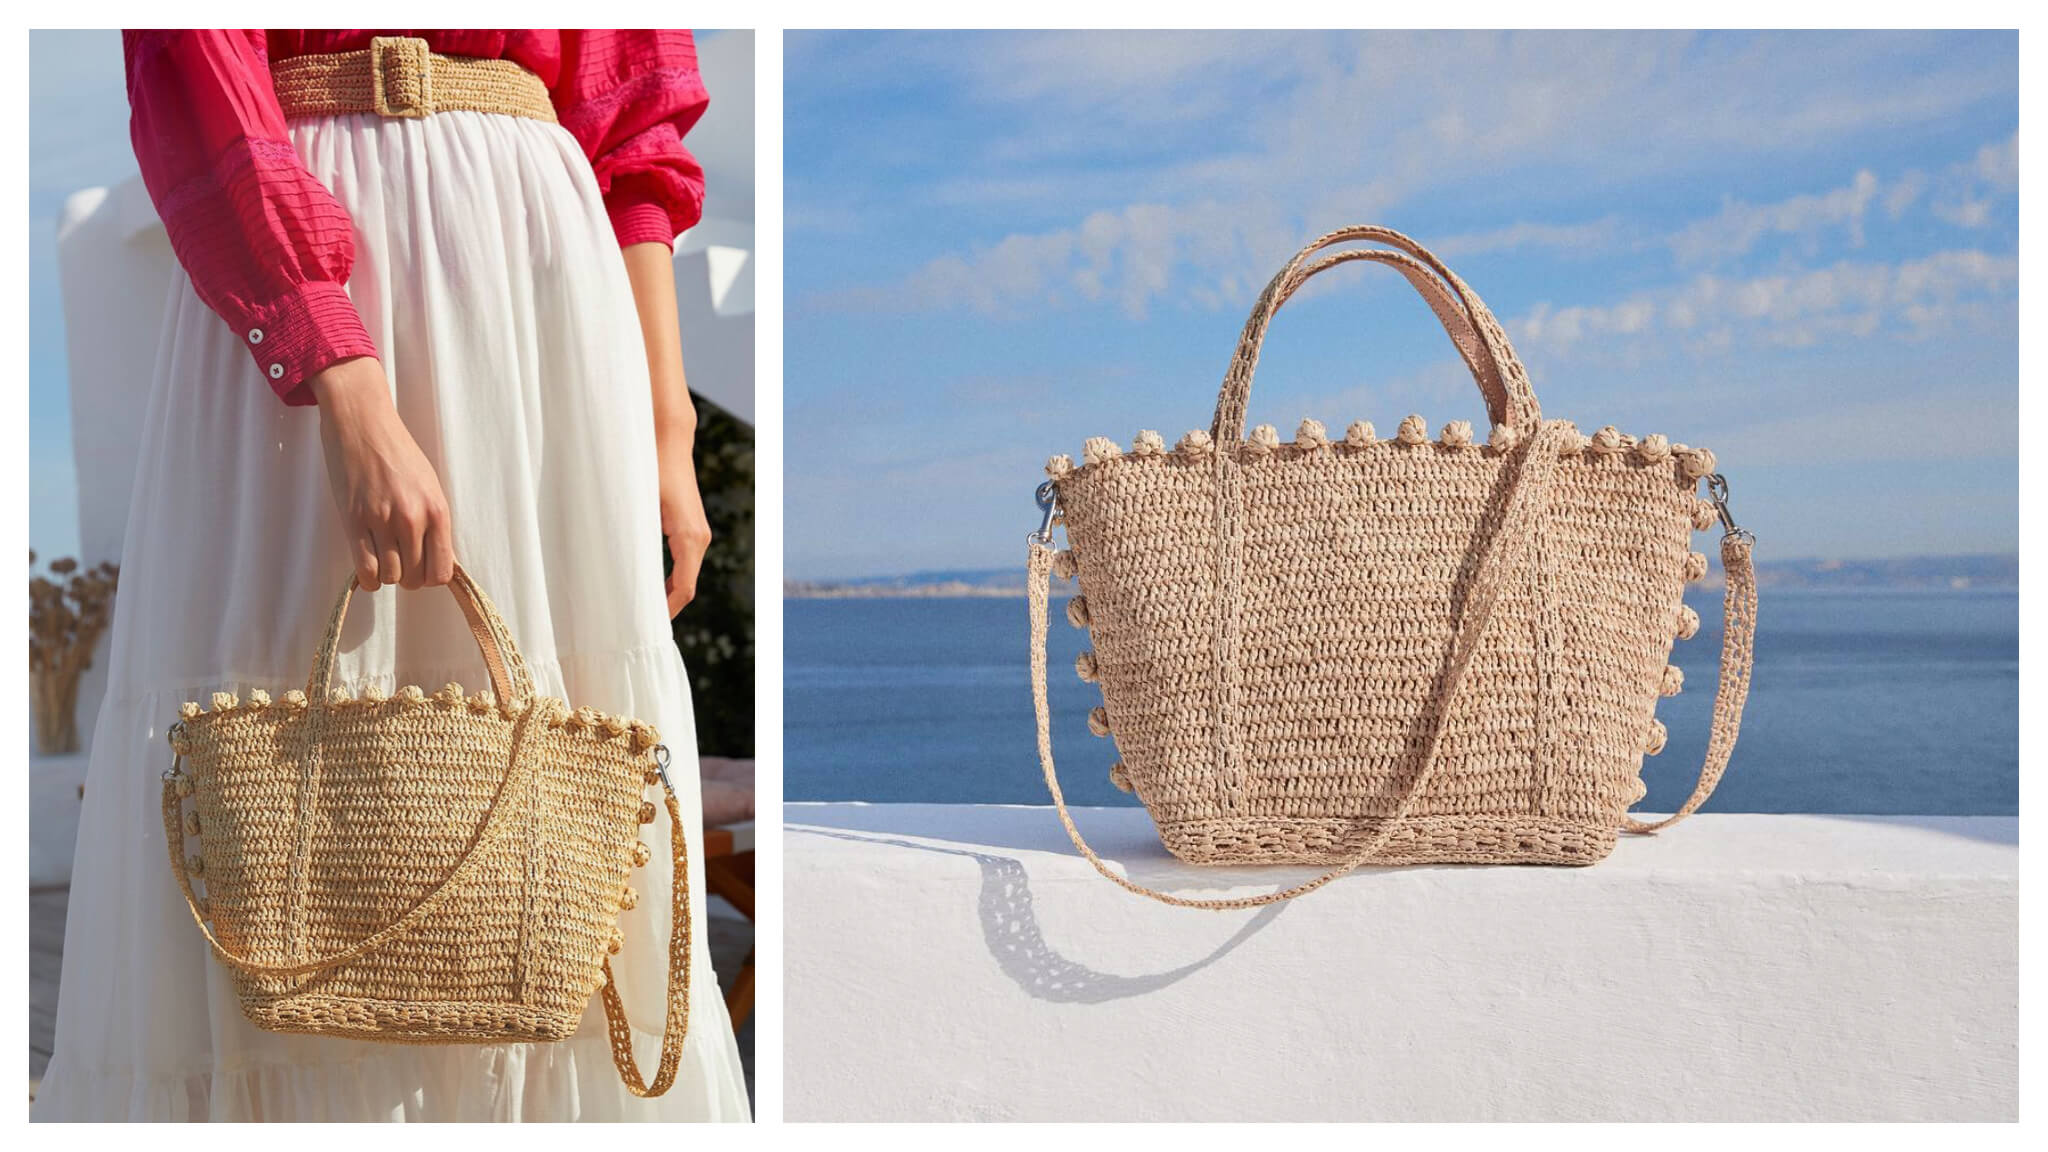 Left: A woman in a pink blouse and white skirt holds a summer handbag from Vanessa Bruno. Her wicker belt matches the material of the bag, Right: The same summer bag, pictured left, from Vanessa Bruno sits on a white ledge with blue ocean and sky in the background.